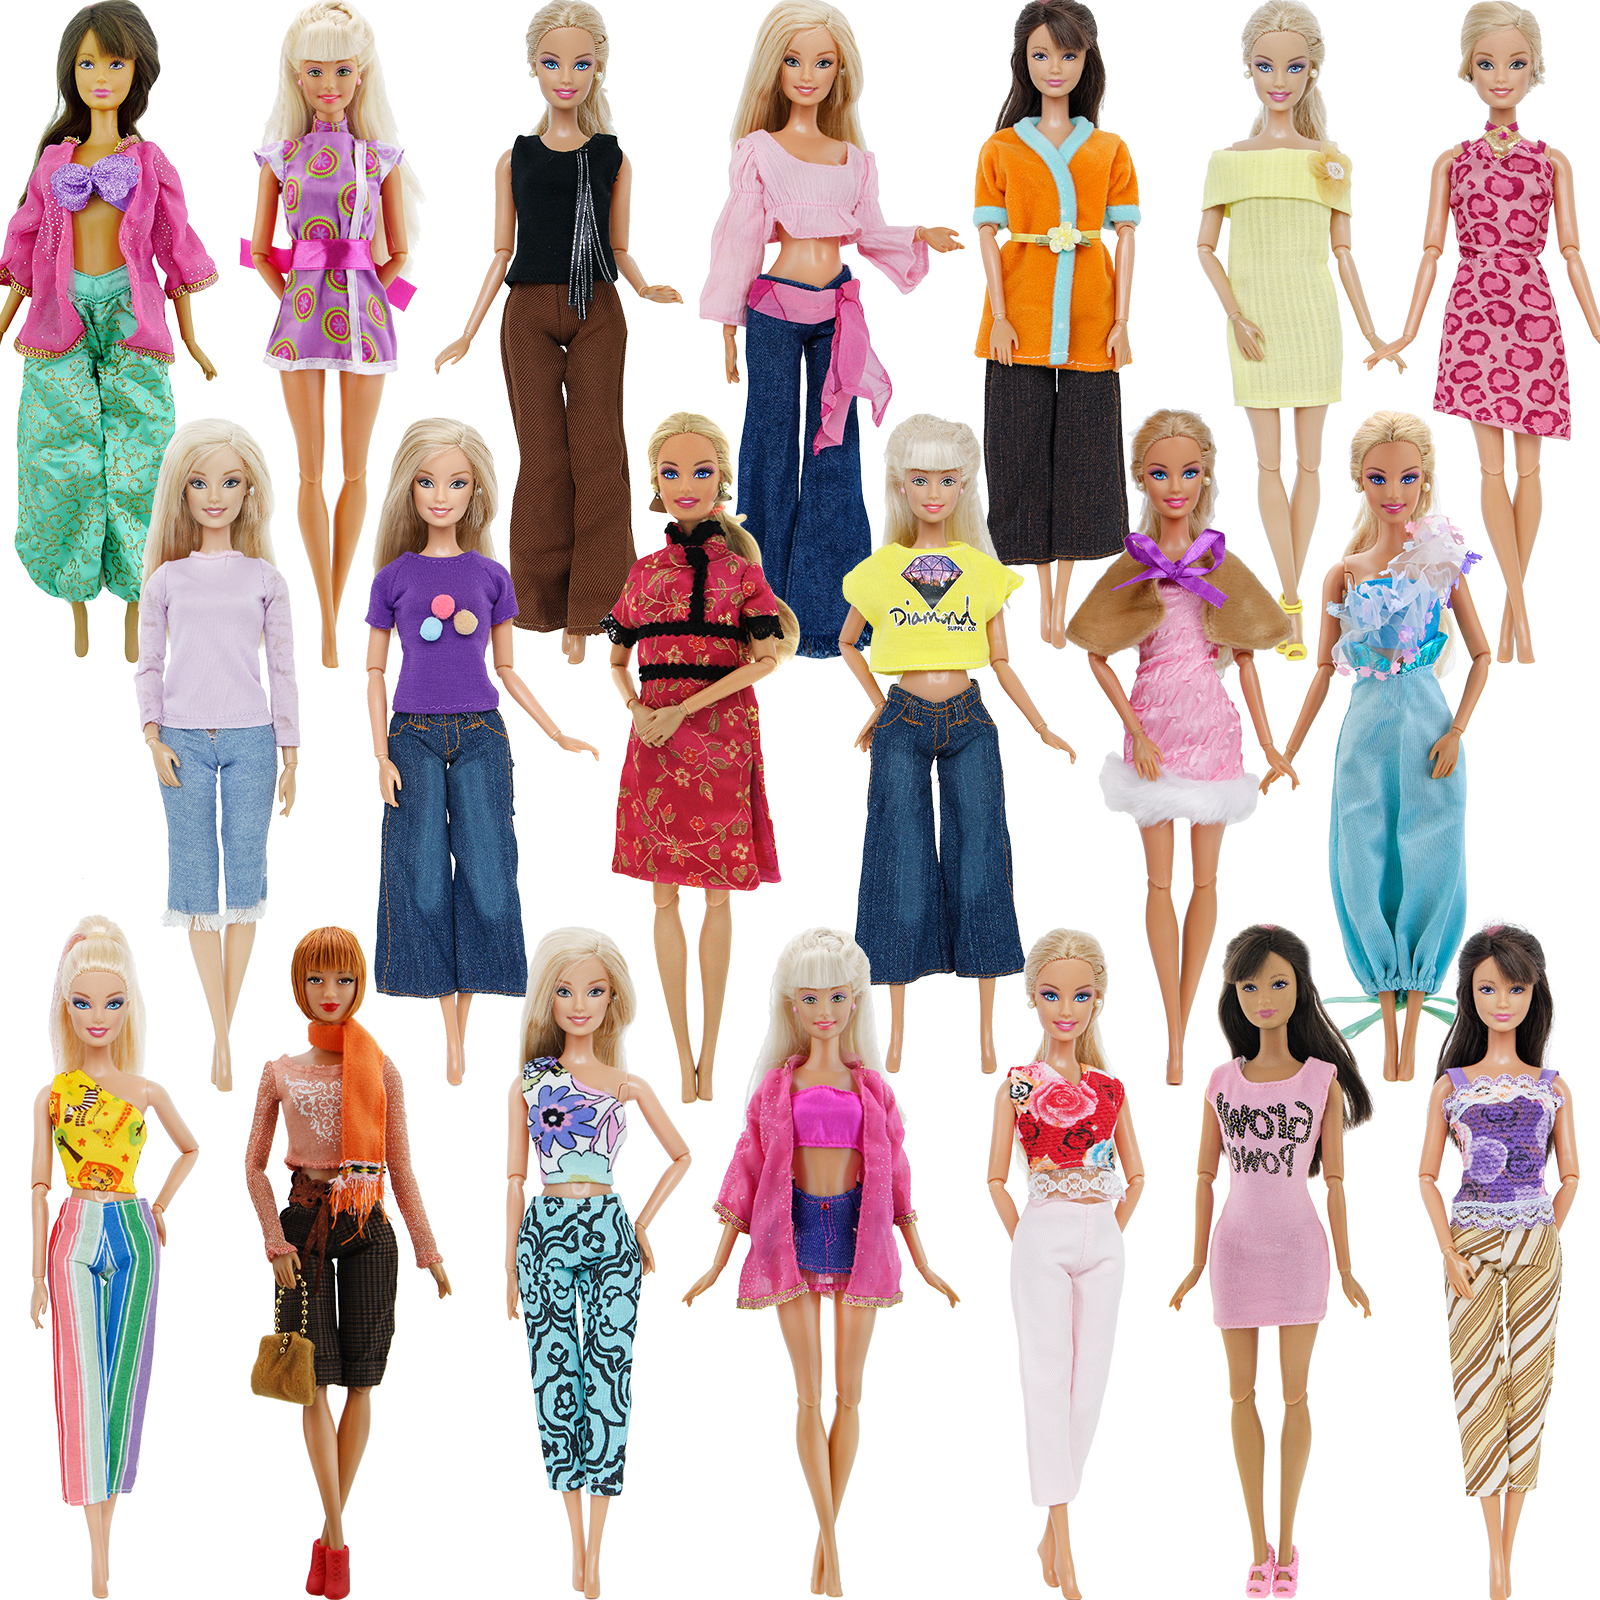 5 Set Doll Clothes Outfit 5 Tops 5 Trousers Pants for Barbie Doll Style Gift